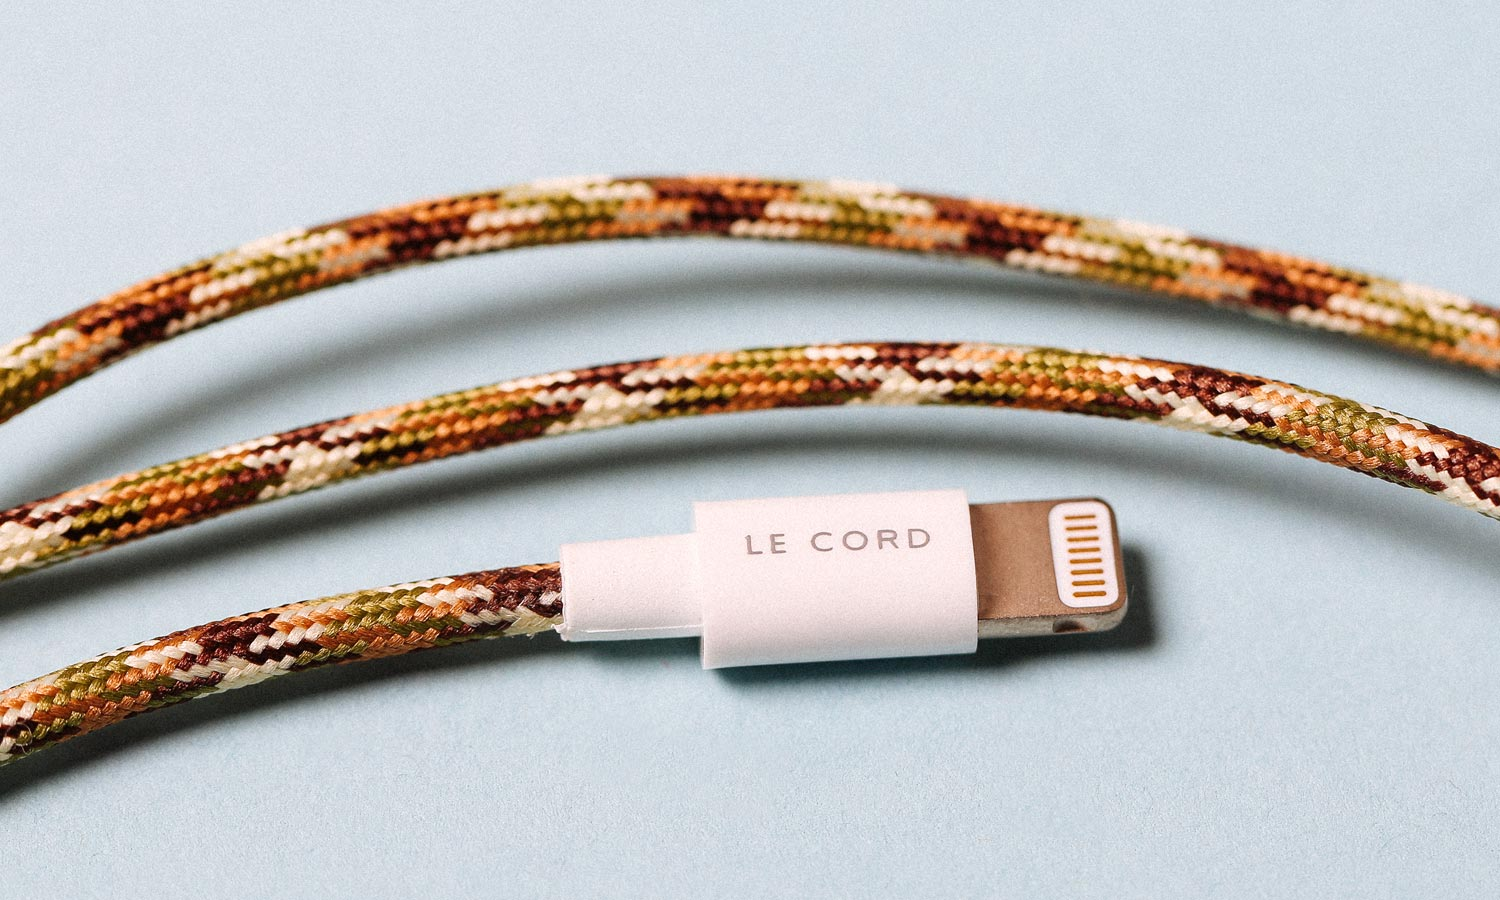 Le-Cord-Iphone-Cables-feature